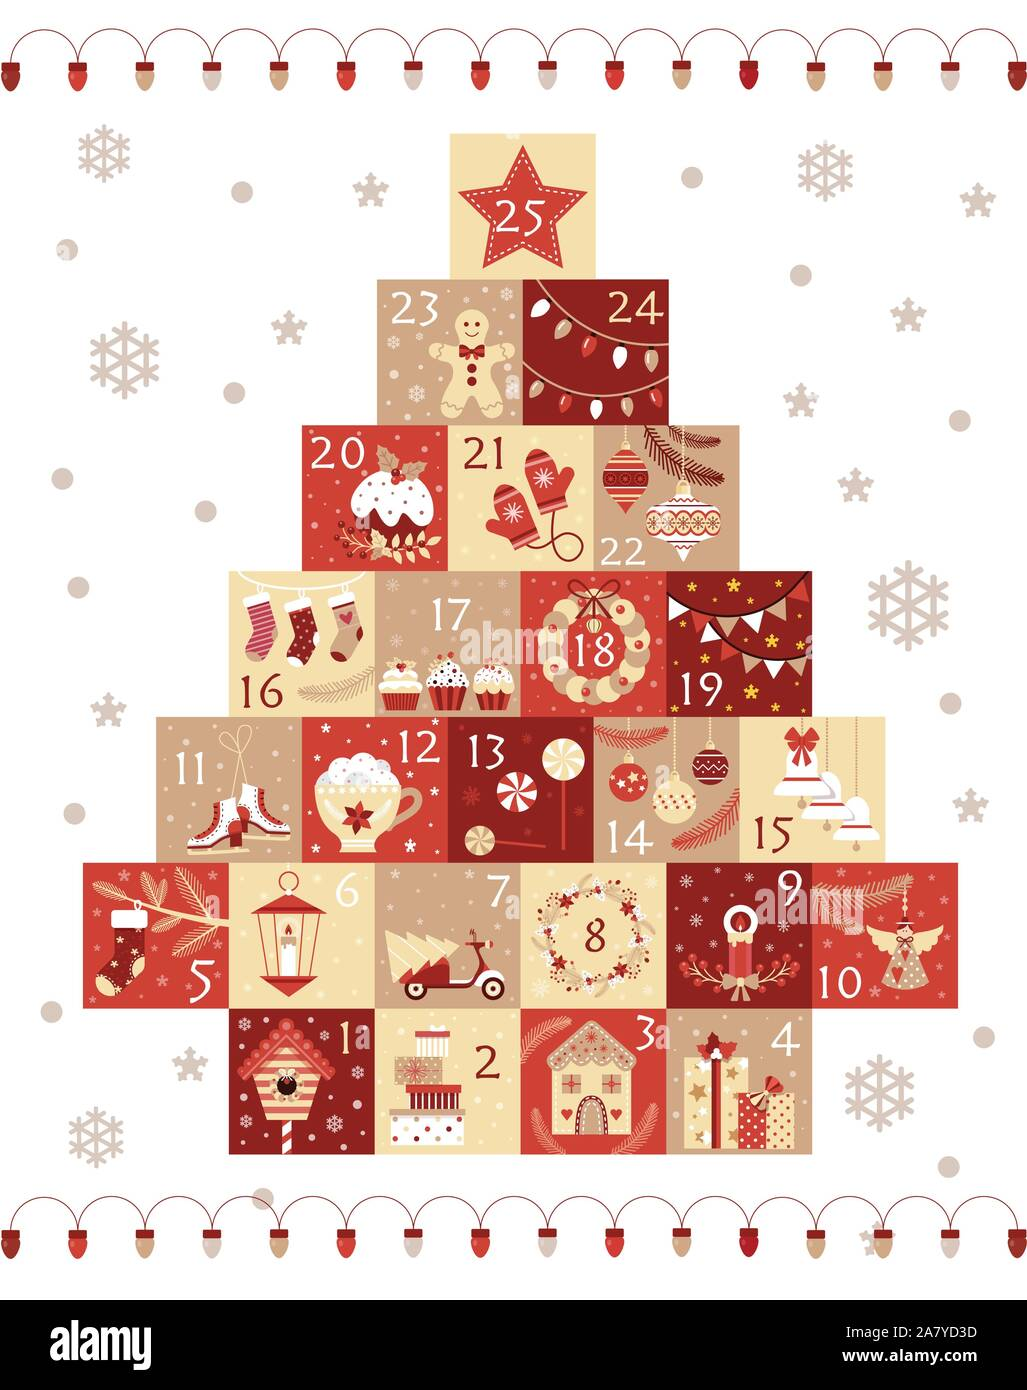 Christmas Advent Calendar with Xmas Day Numbers Stock Vector Image